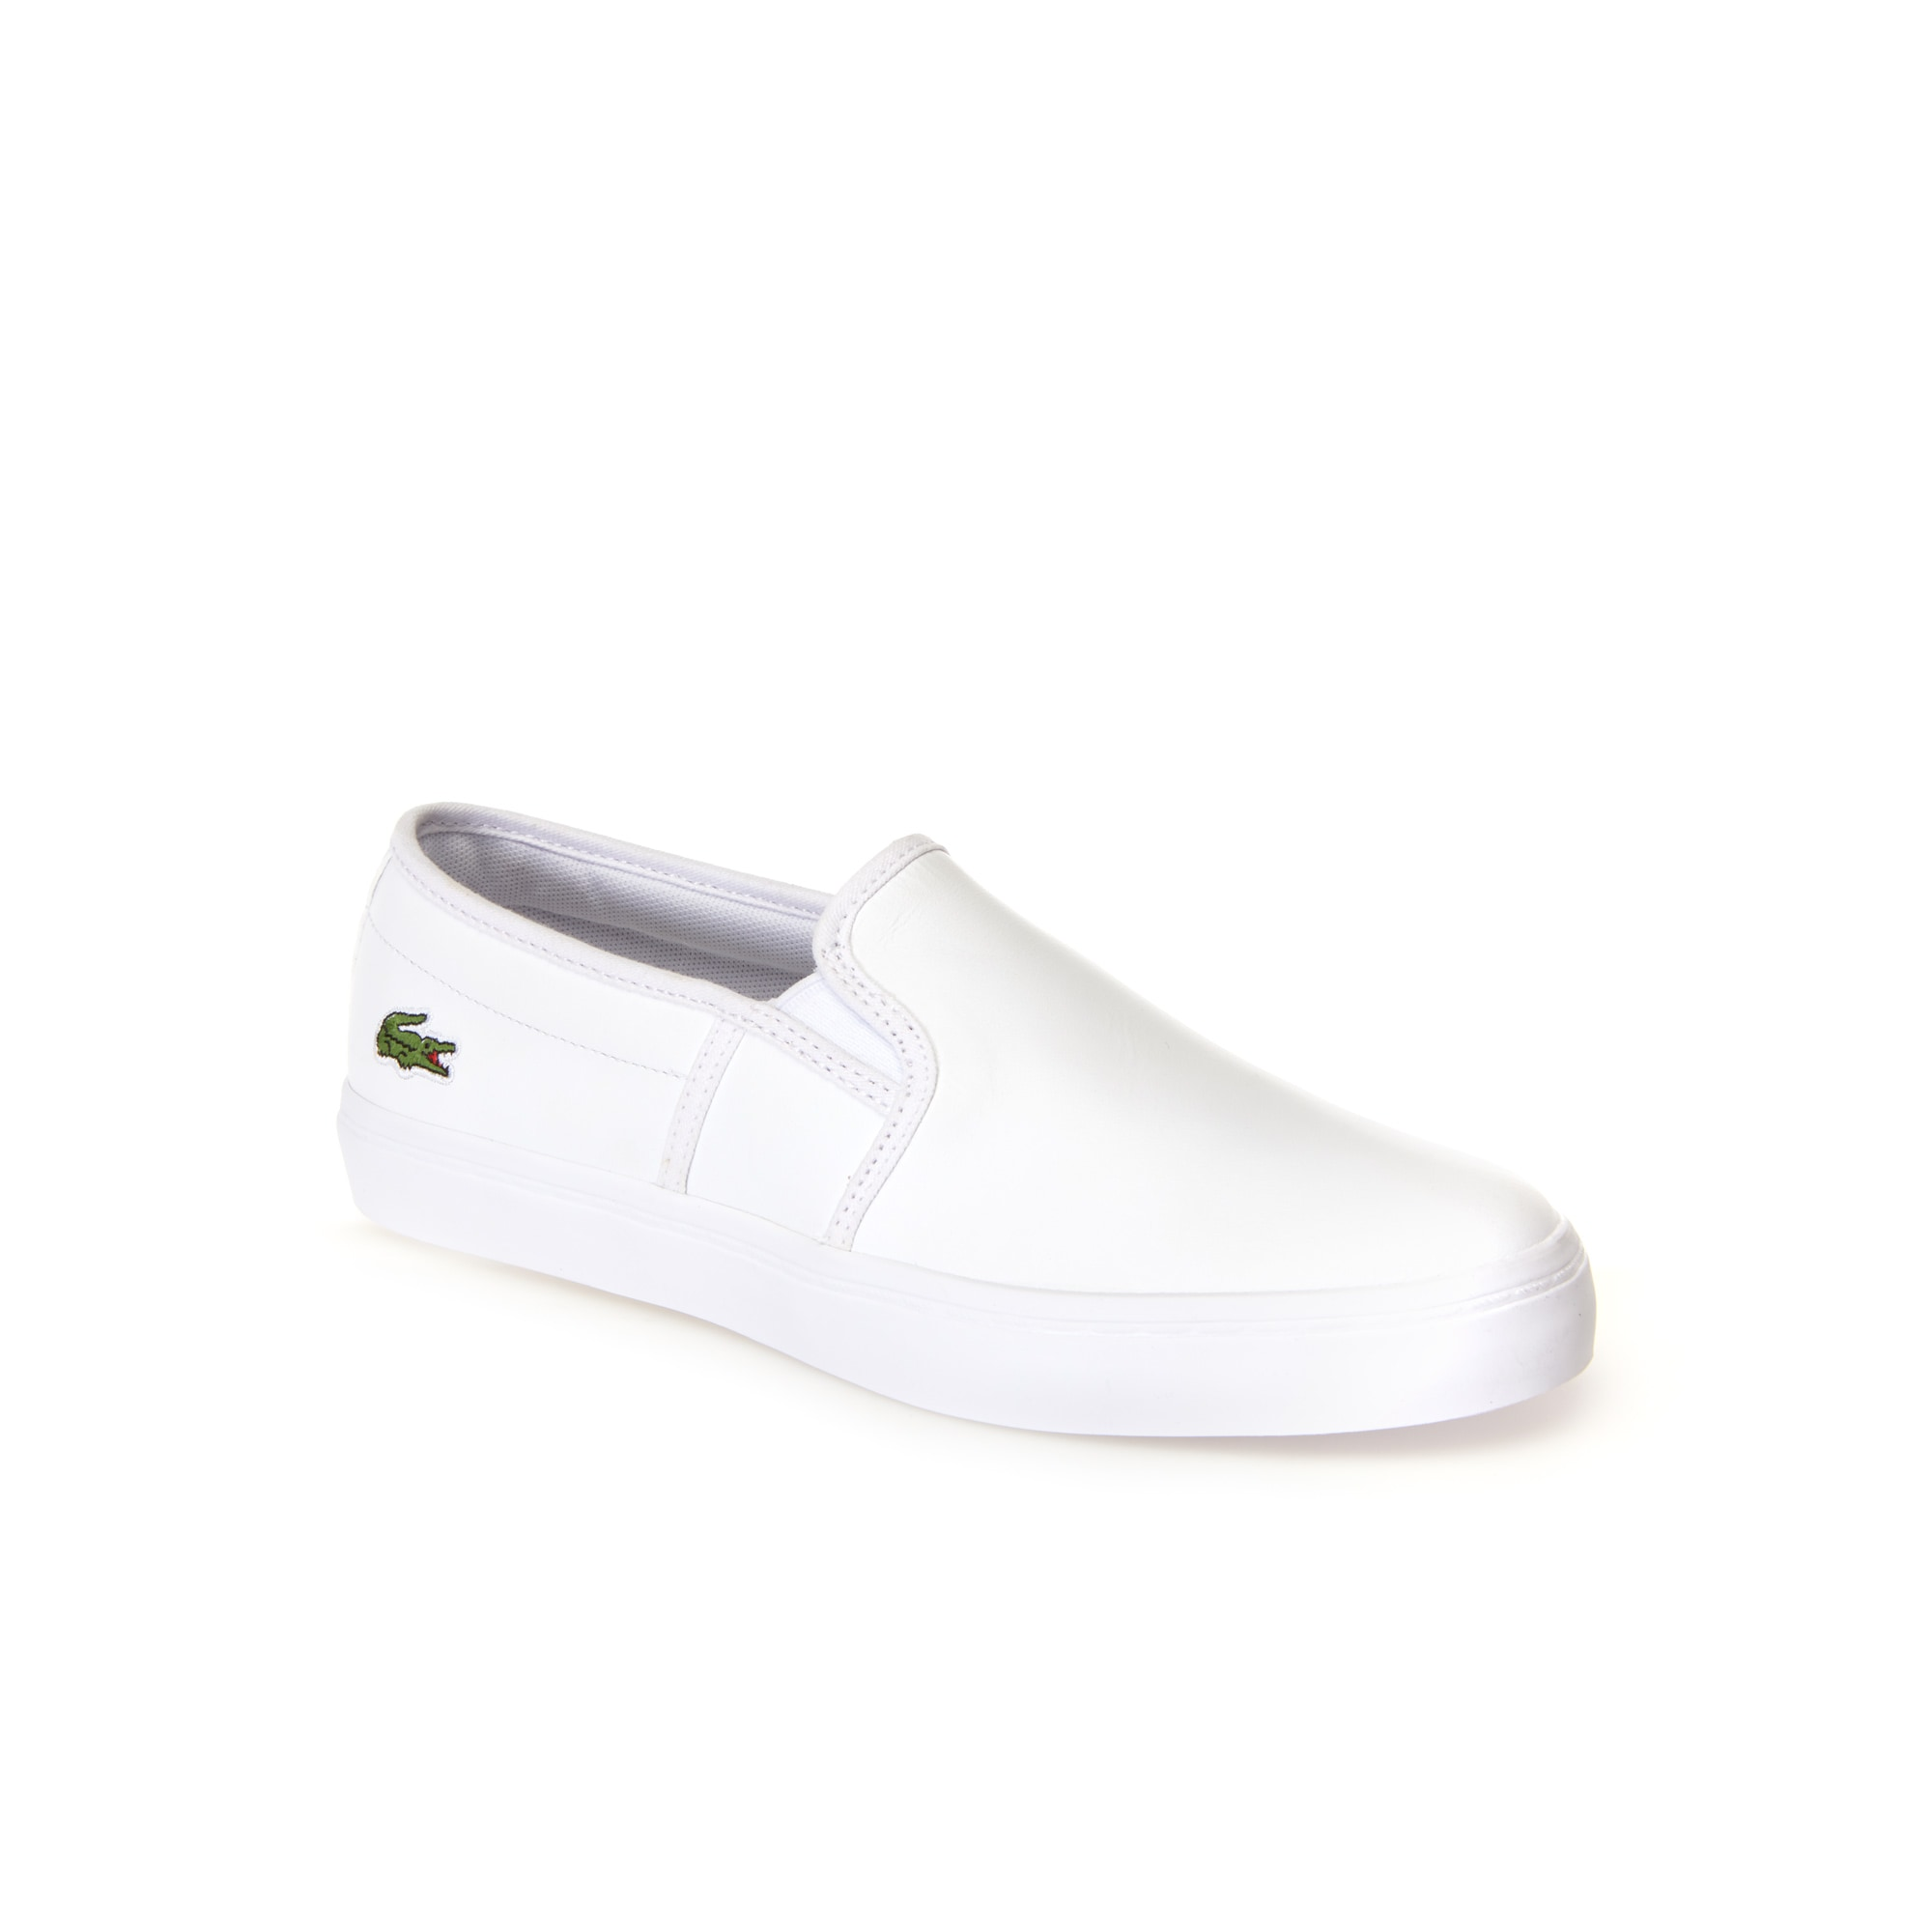 Damen-Slipper GAZON aus Leder